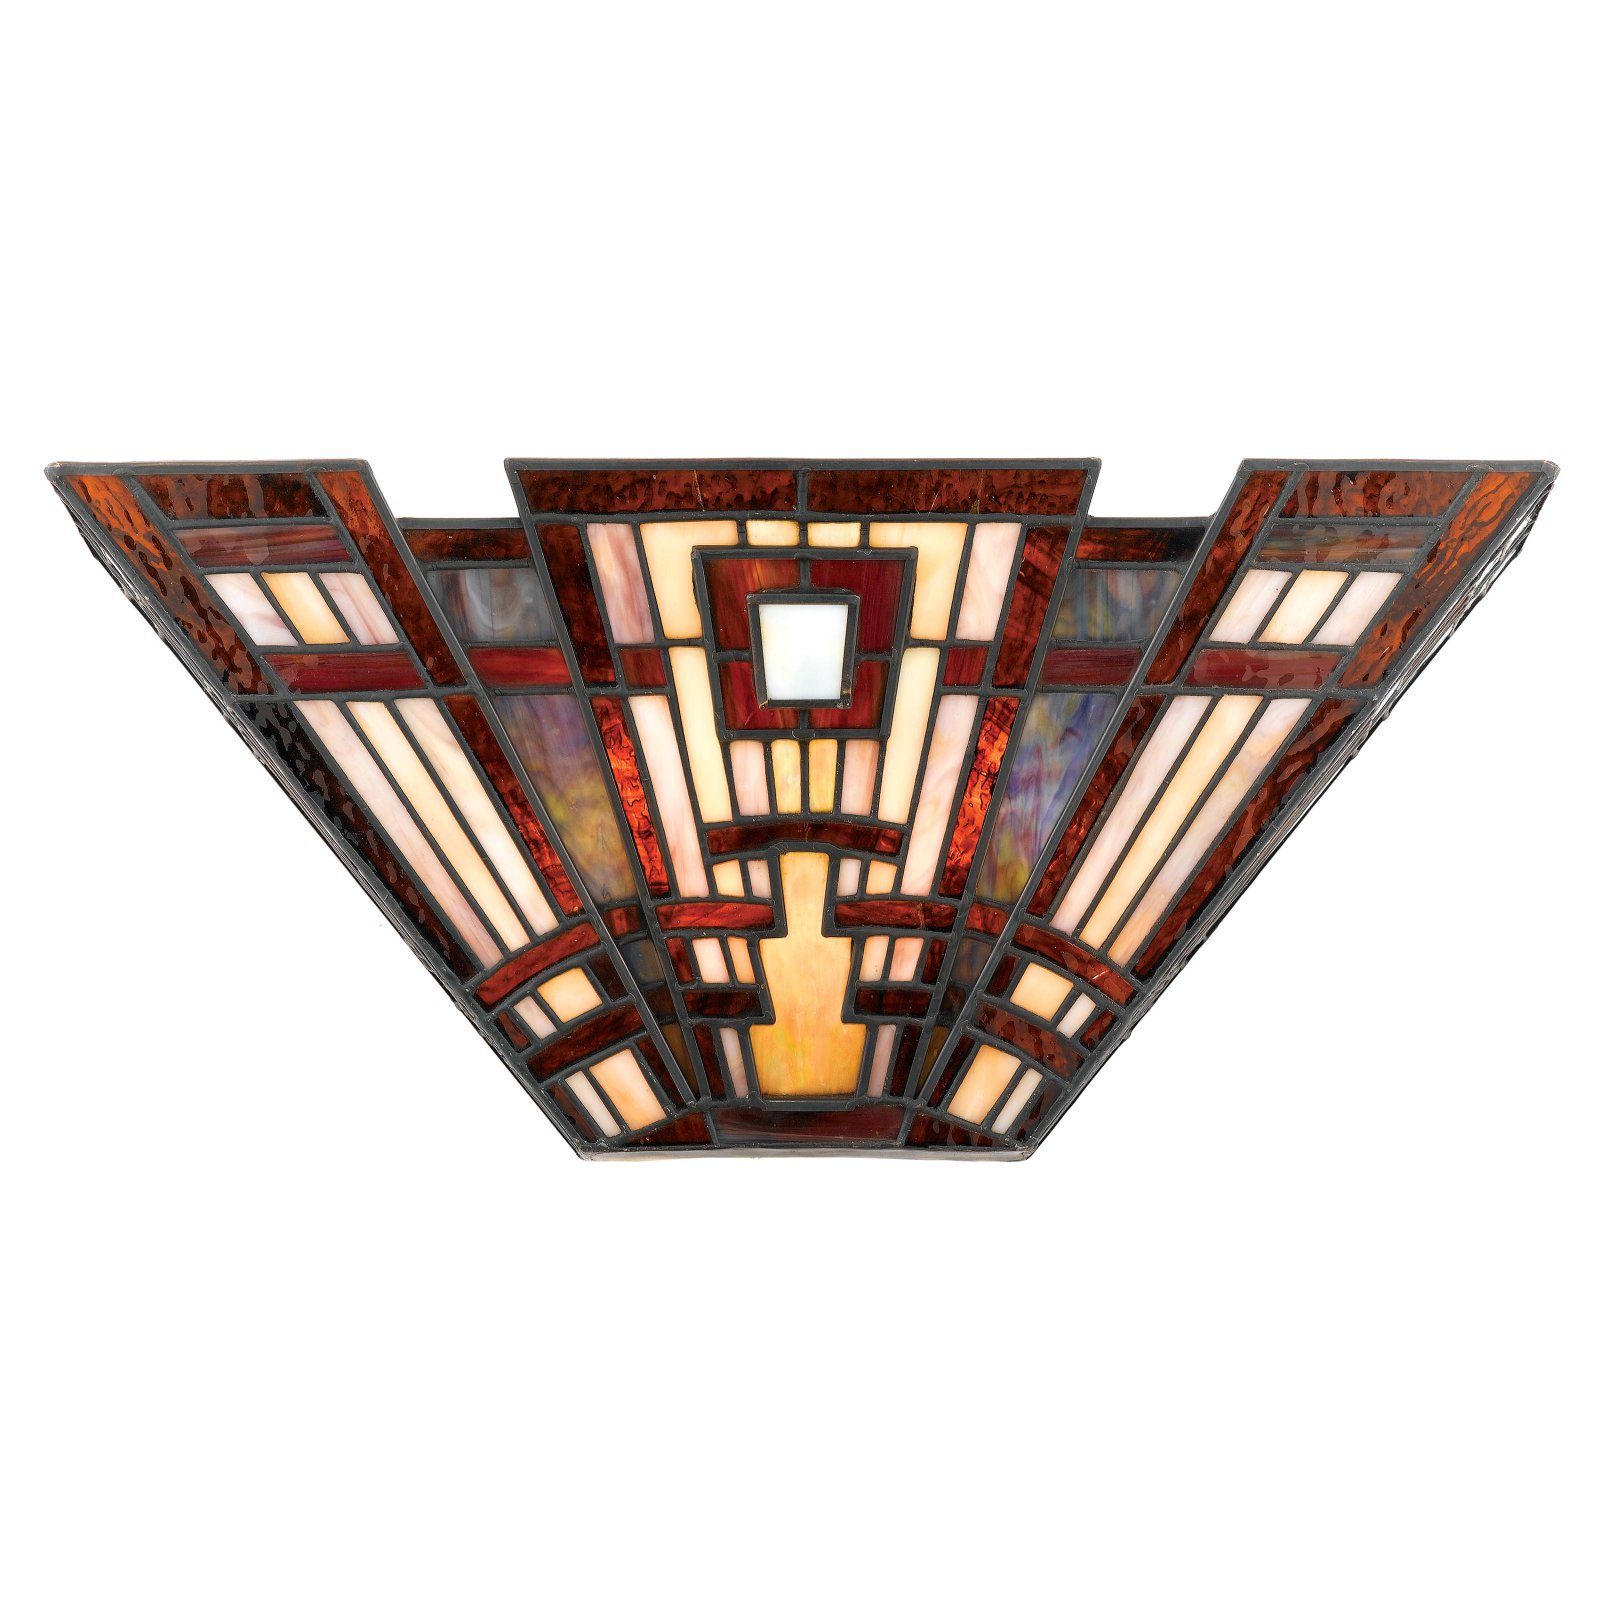 Quoizel Classic Craftsman TFCC8802 Tiffany Wall Sconce by Quoizel